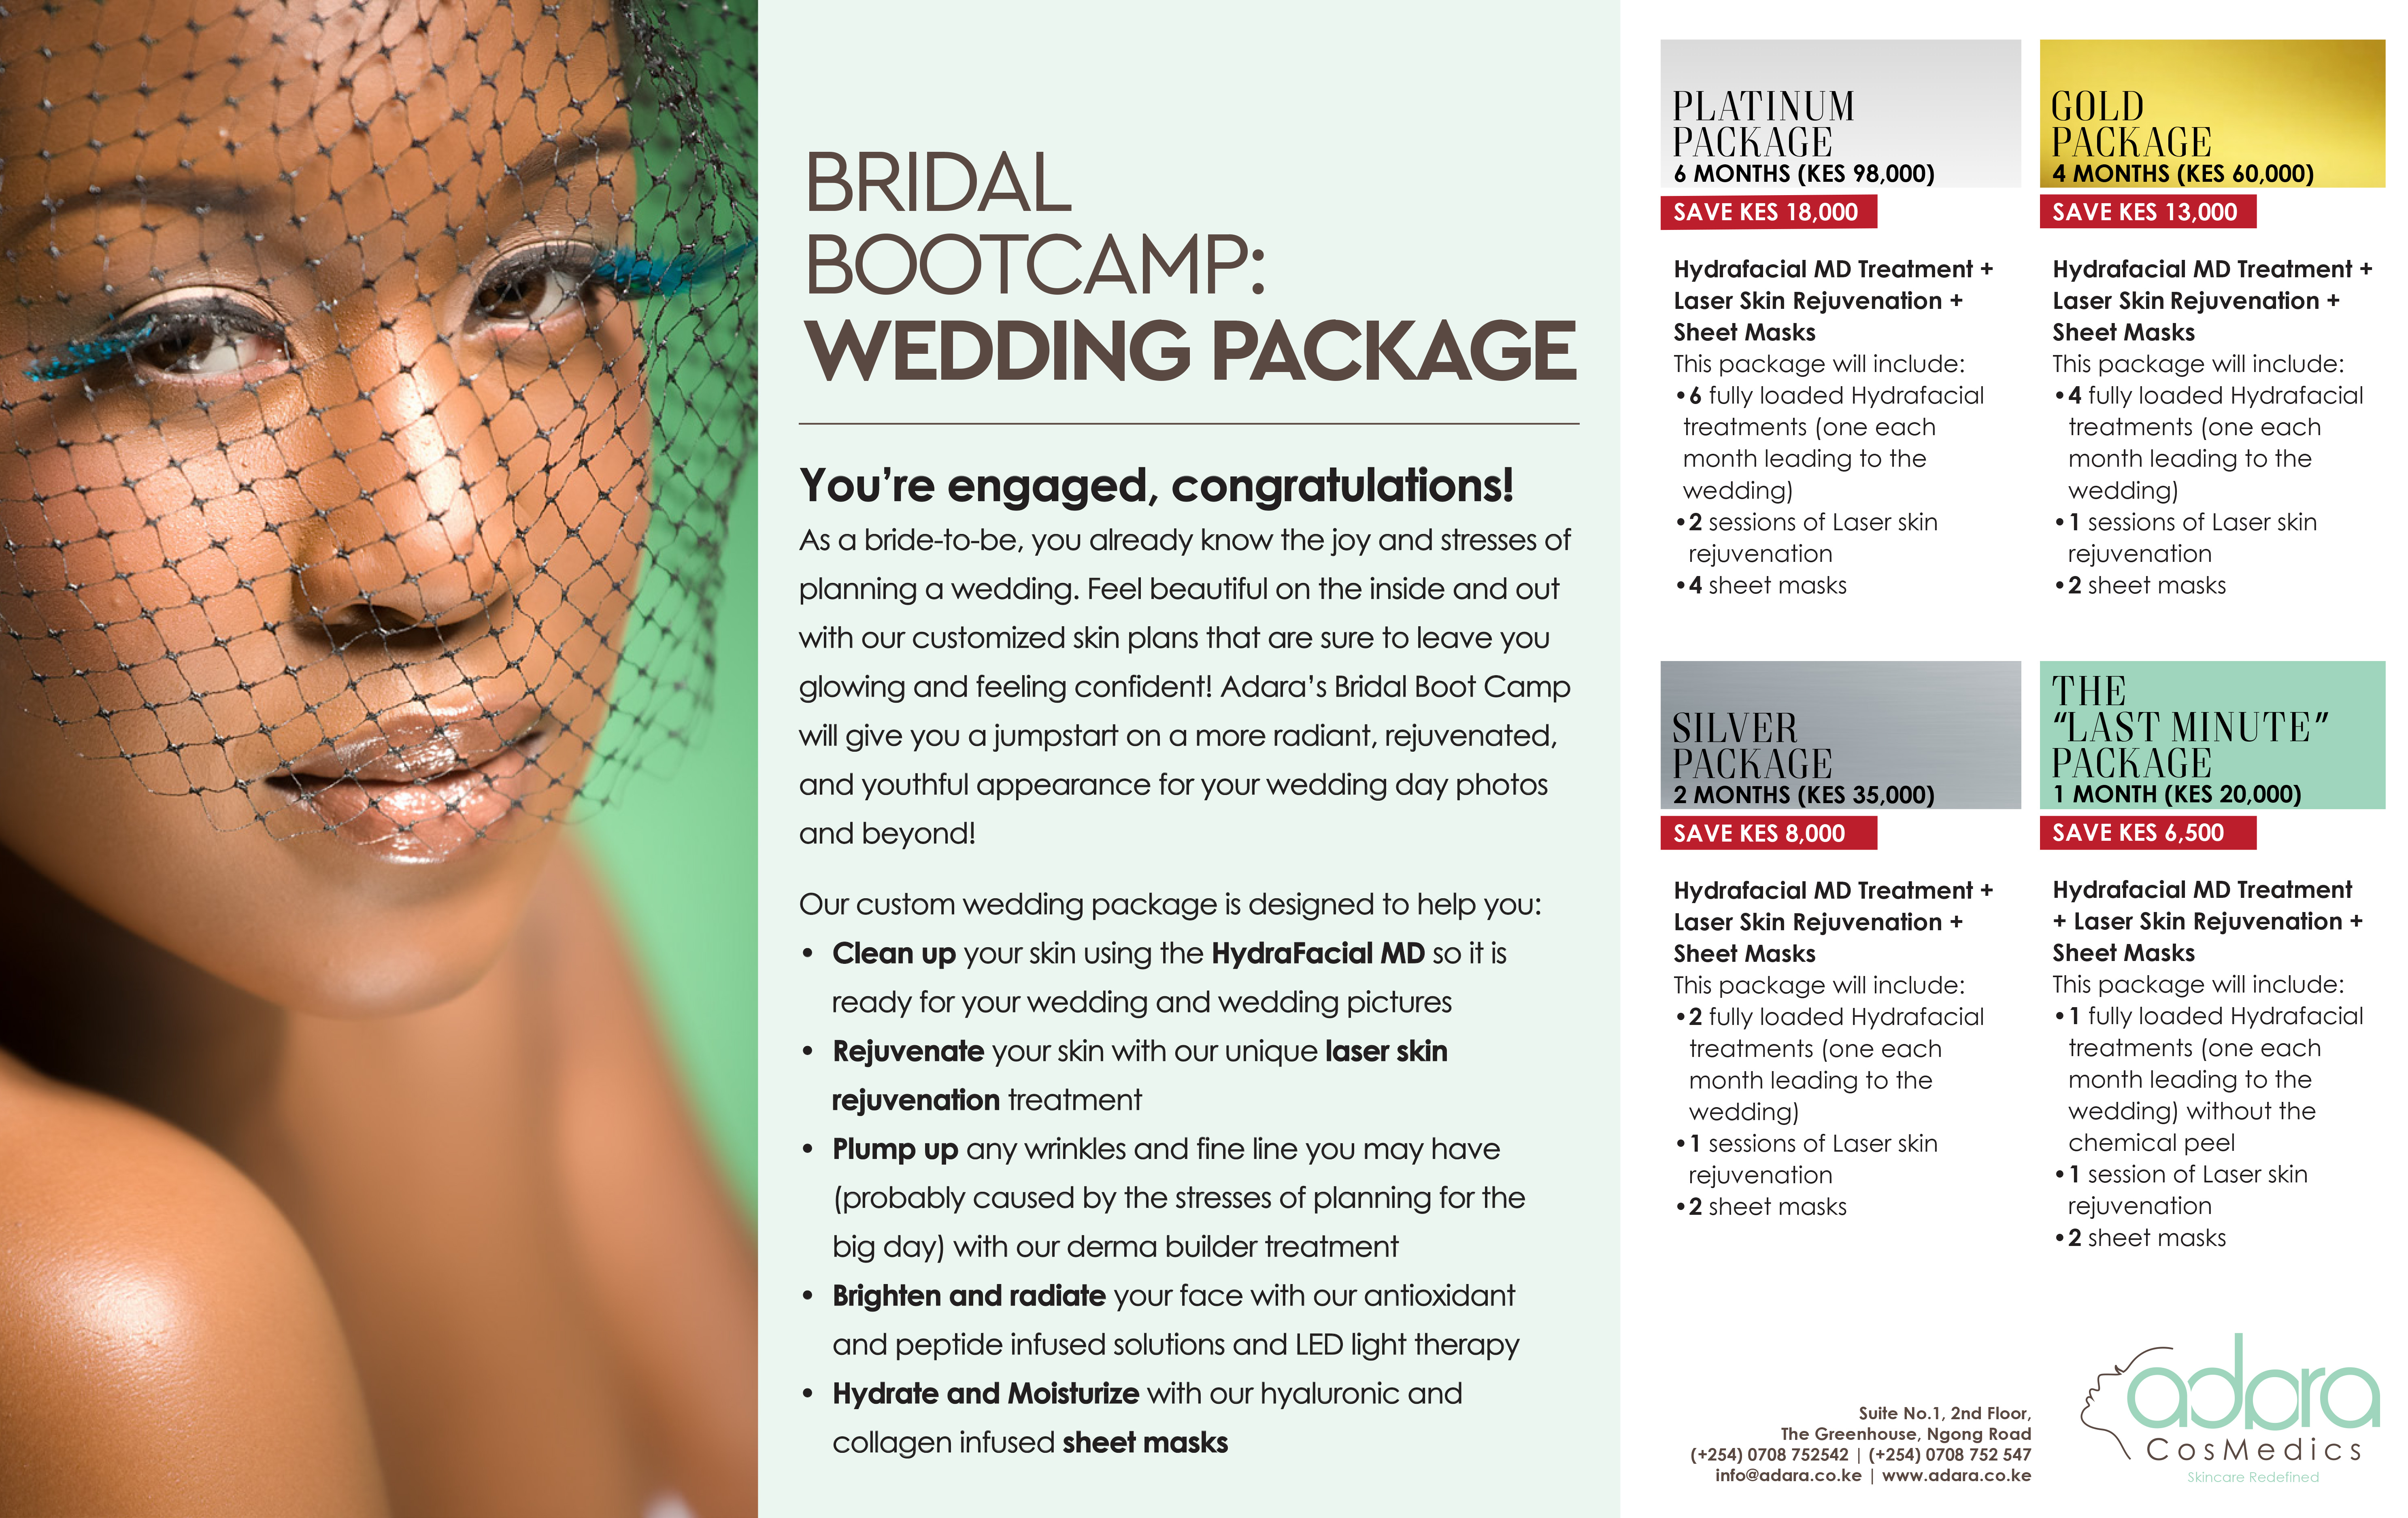 Our Wedding Packages